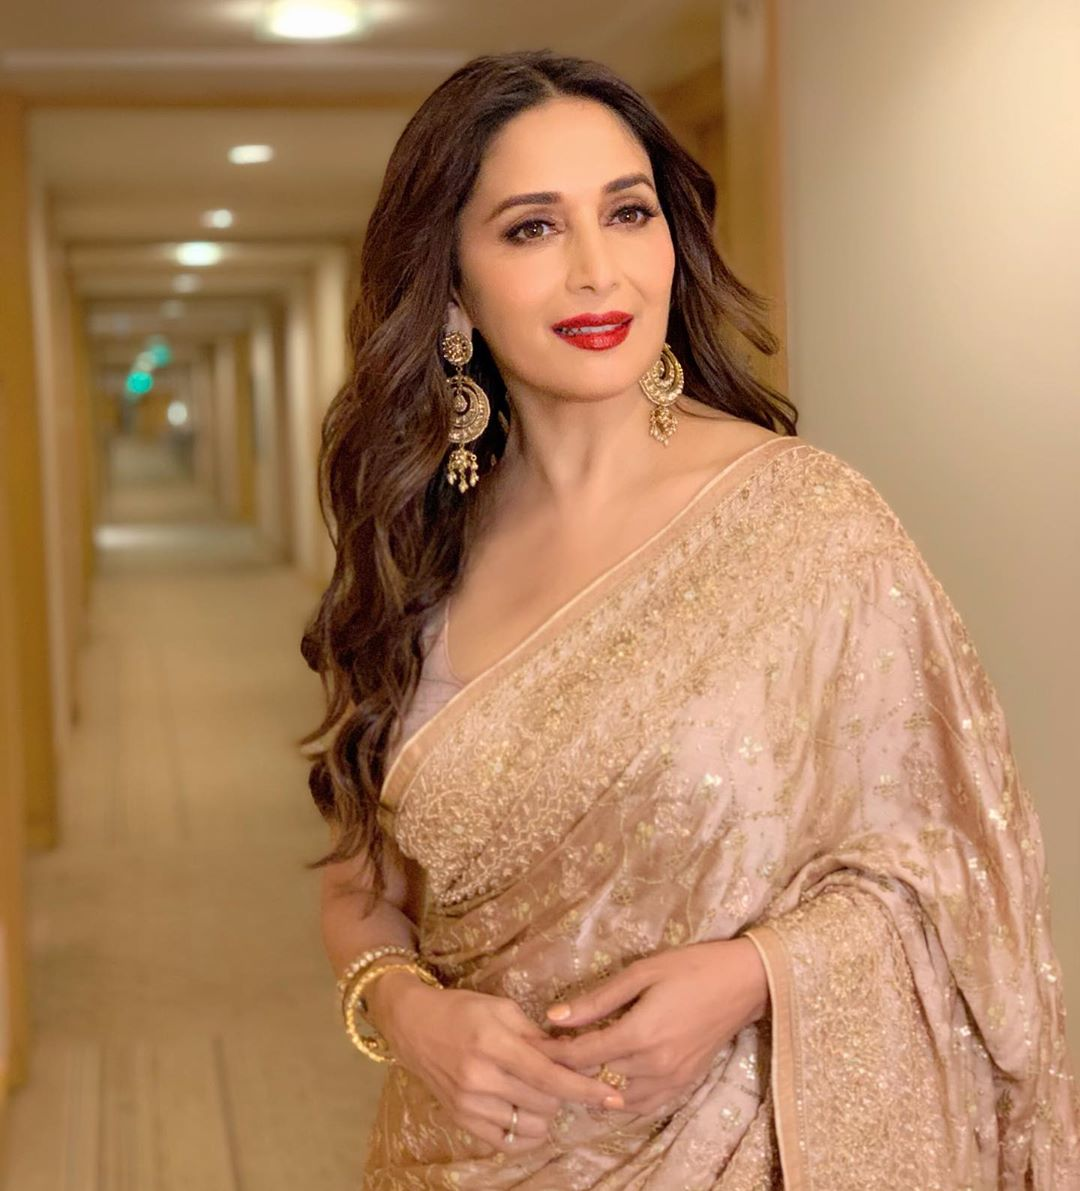 Madhuri Dixit looks sensational & makes hearts go dhak dhak in a gold saree perfect for the festive season